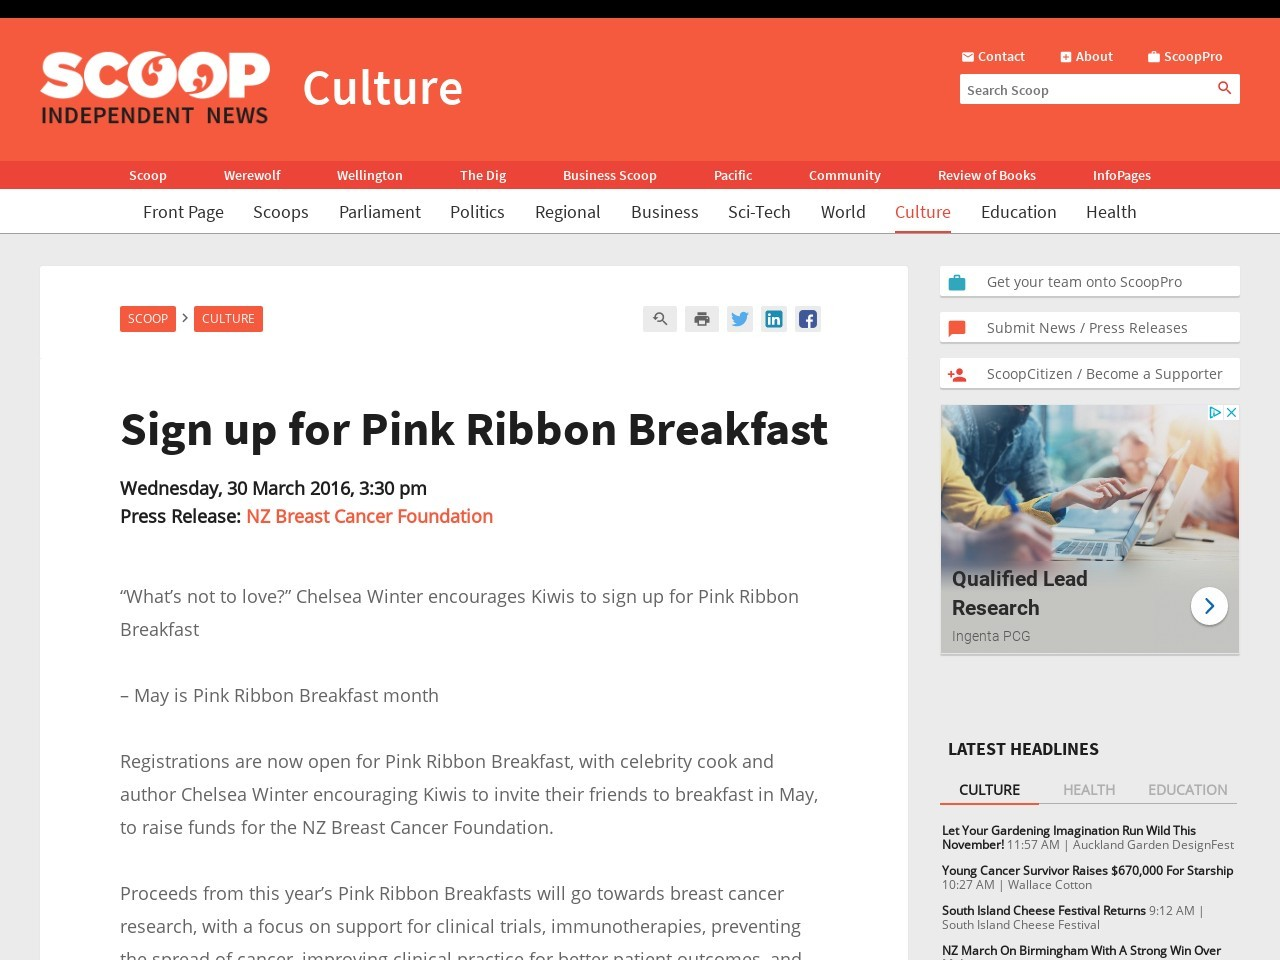 Sign up for Pink Ribbon Breakfast